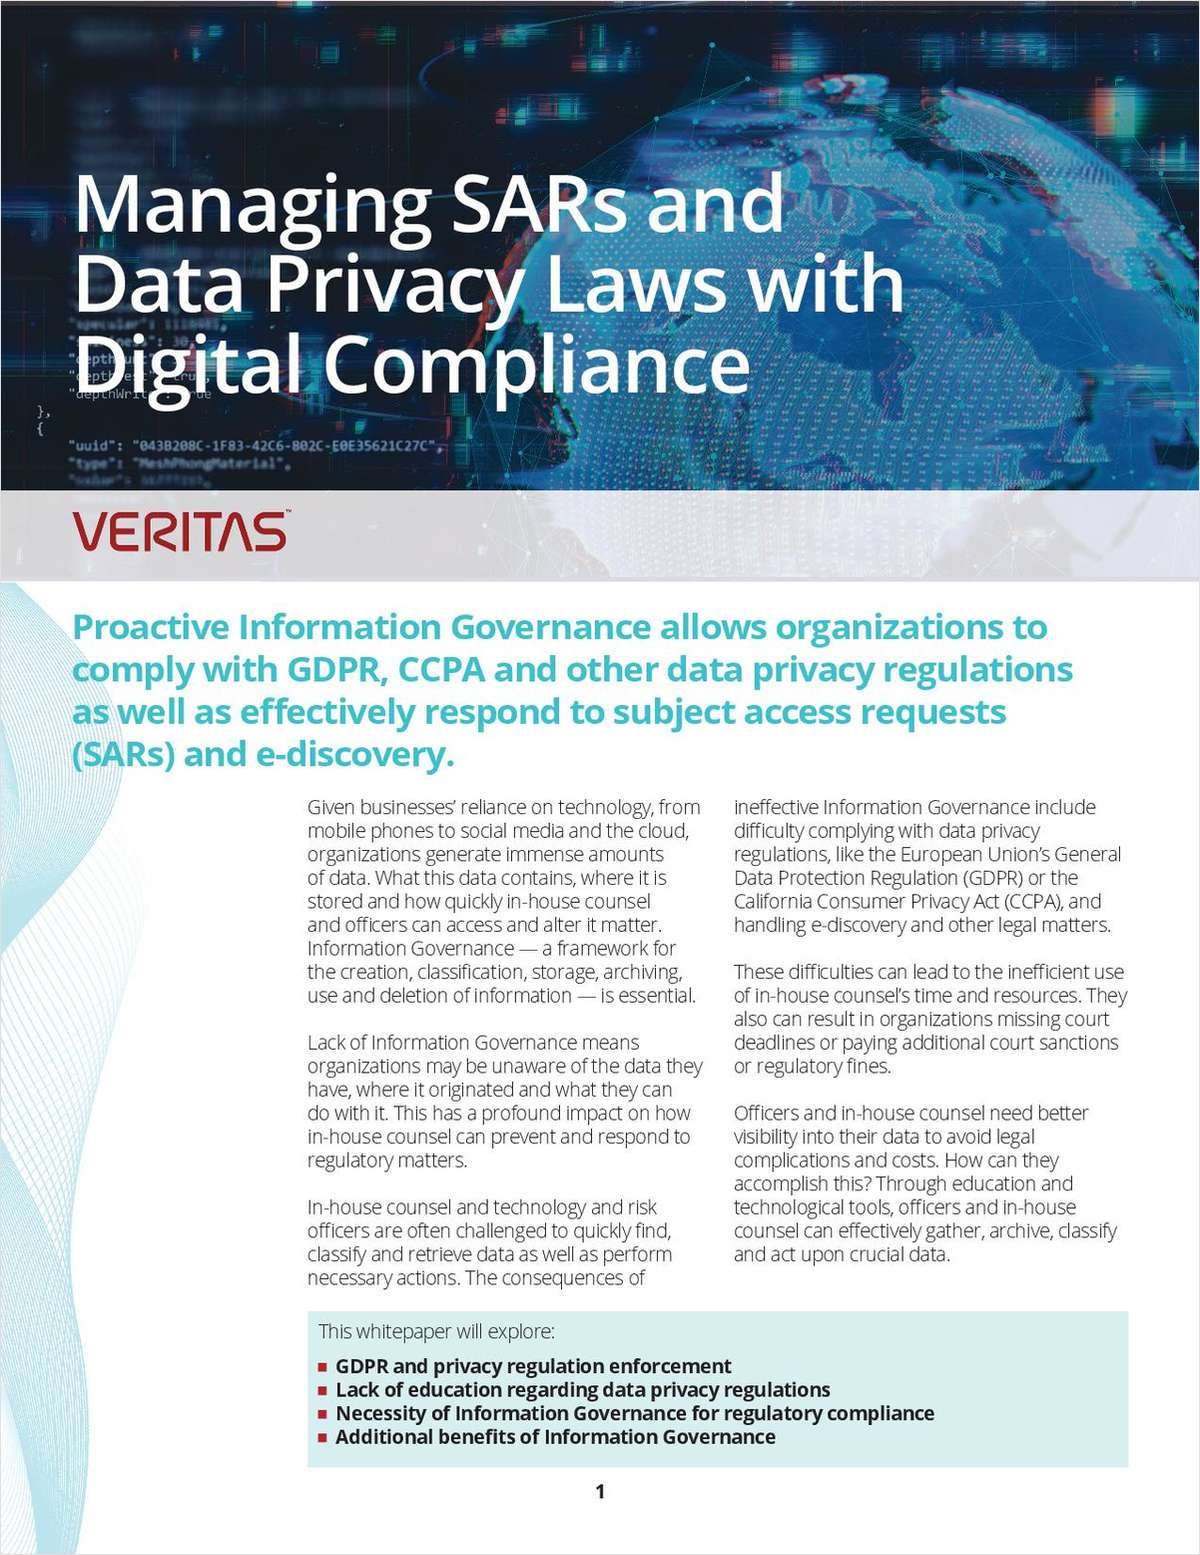 Managing SARs and Data Privacy Laws with Digital Compliance